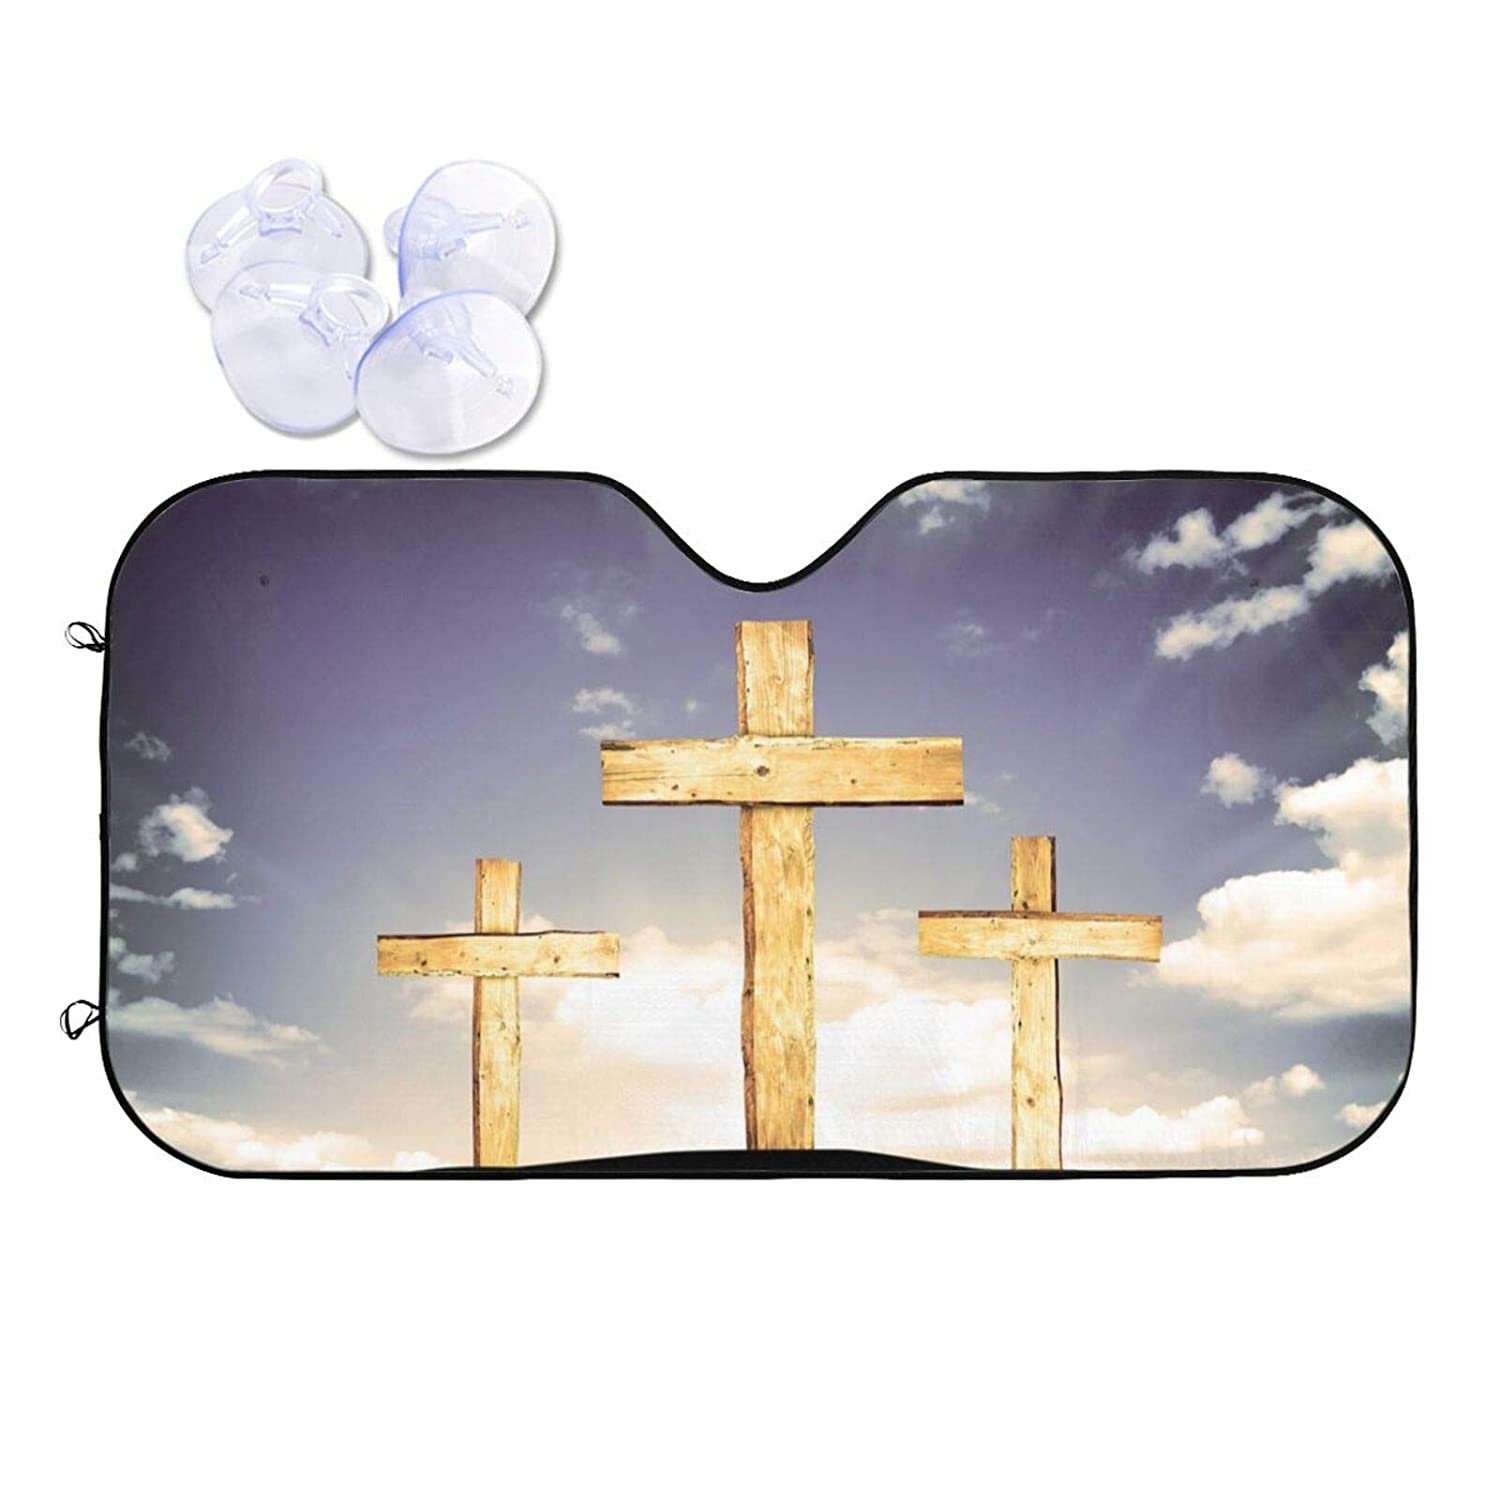 Wooden Crosses Car Front Windshield Sun Rays - Shade Great interest S Manufacturer regenerated product Blocks Uv